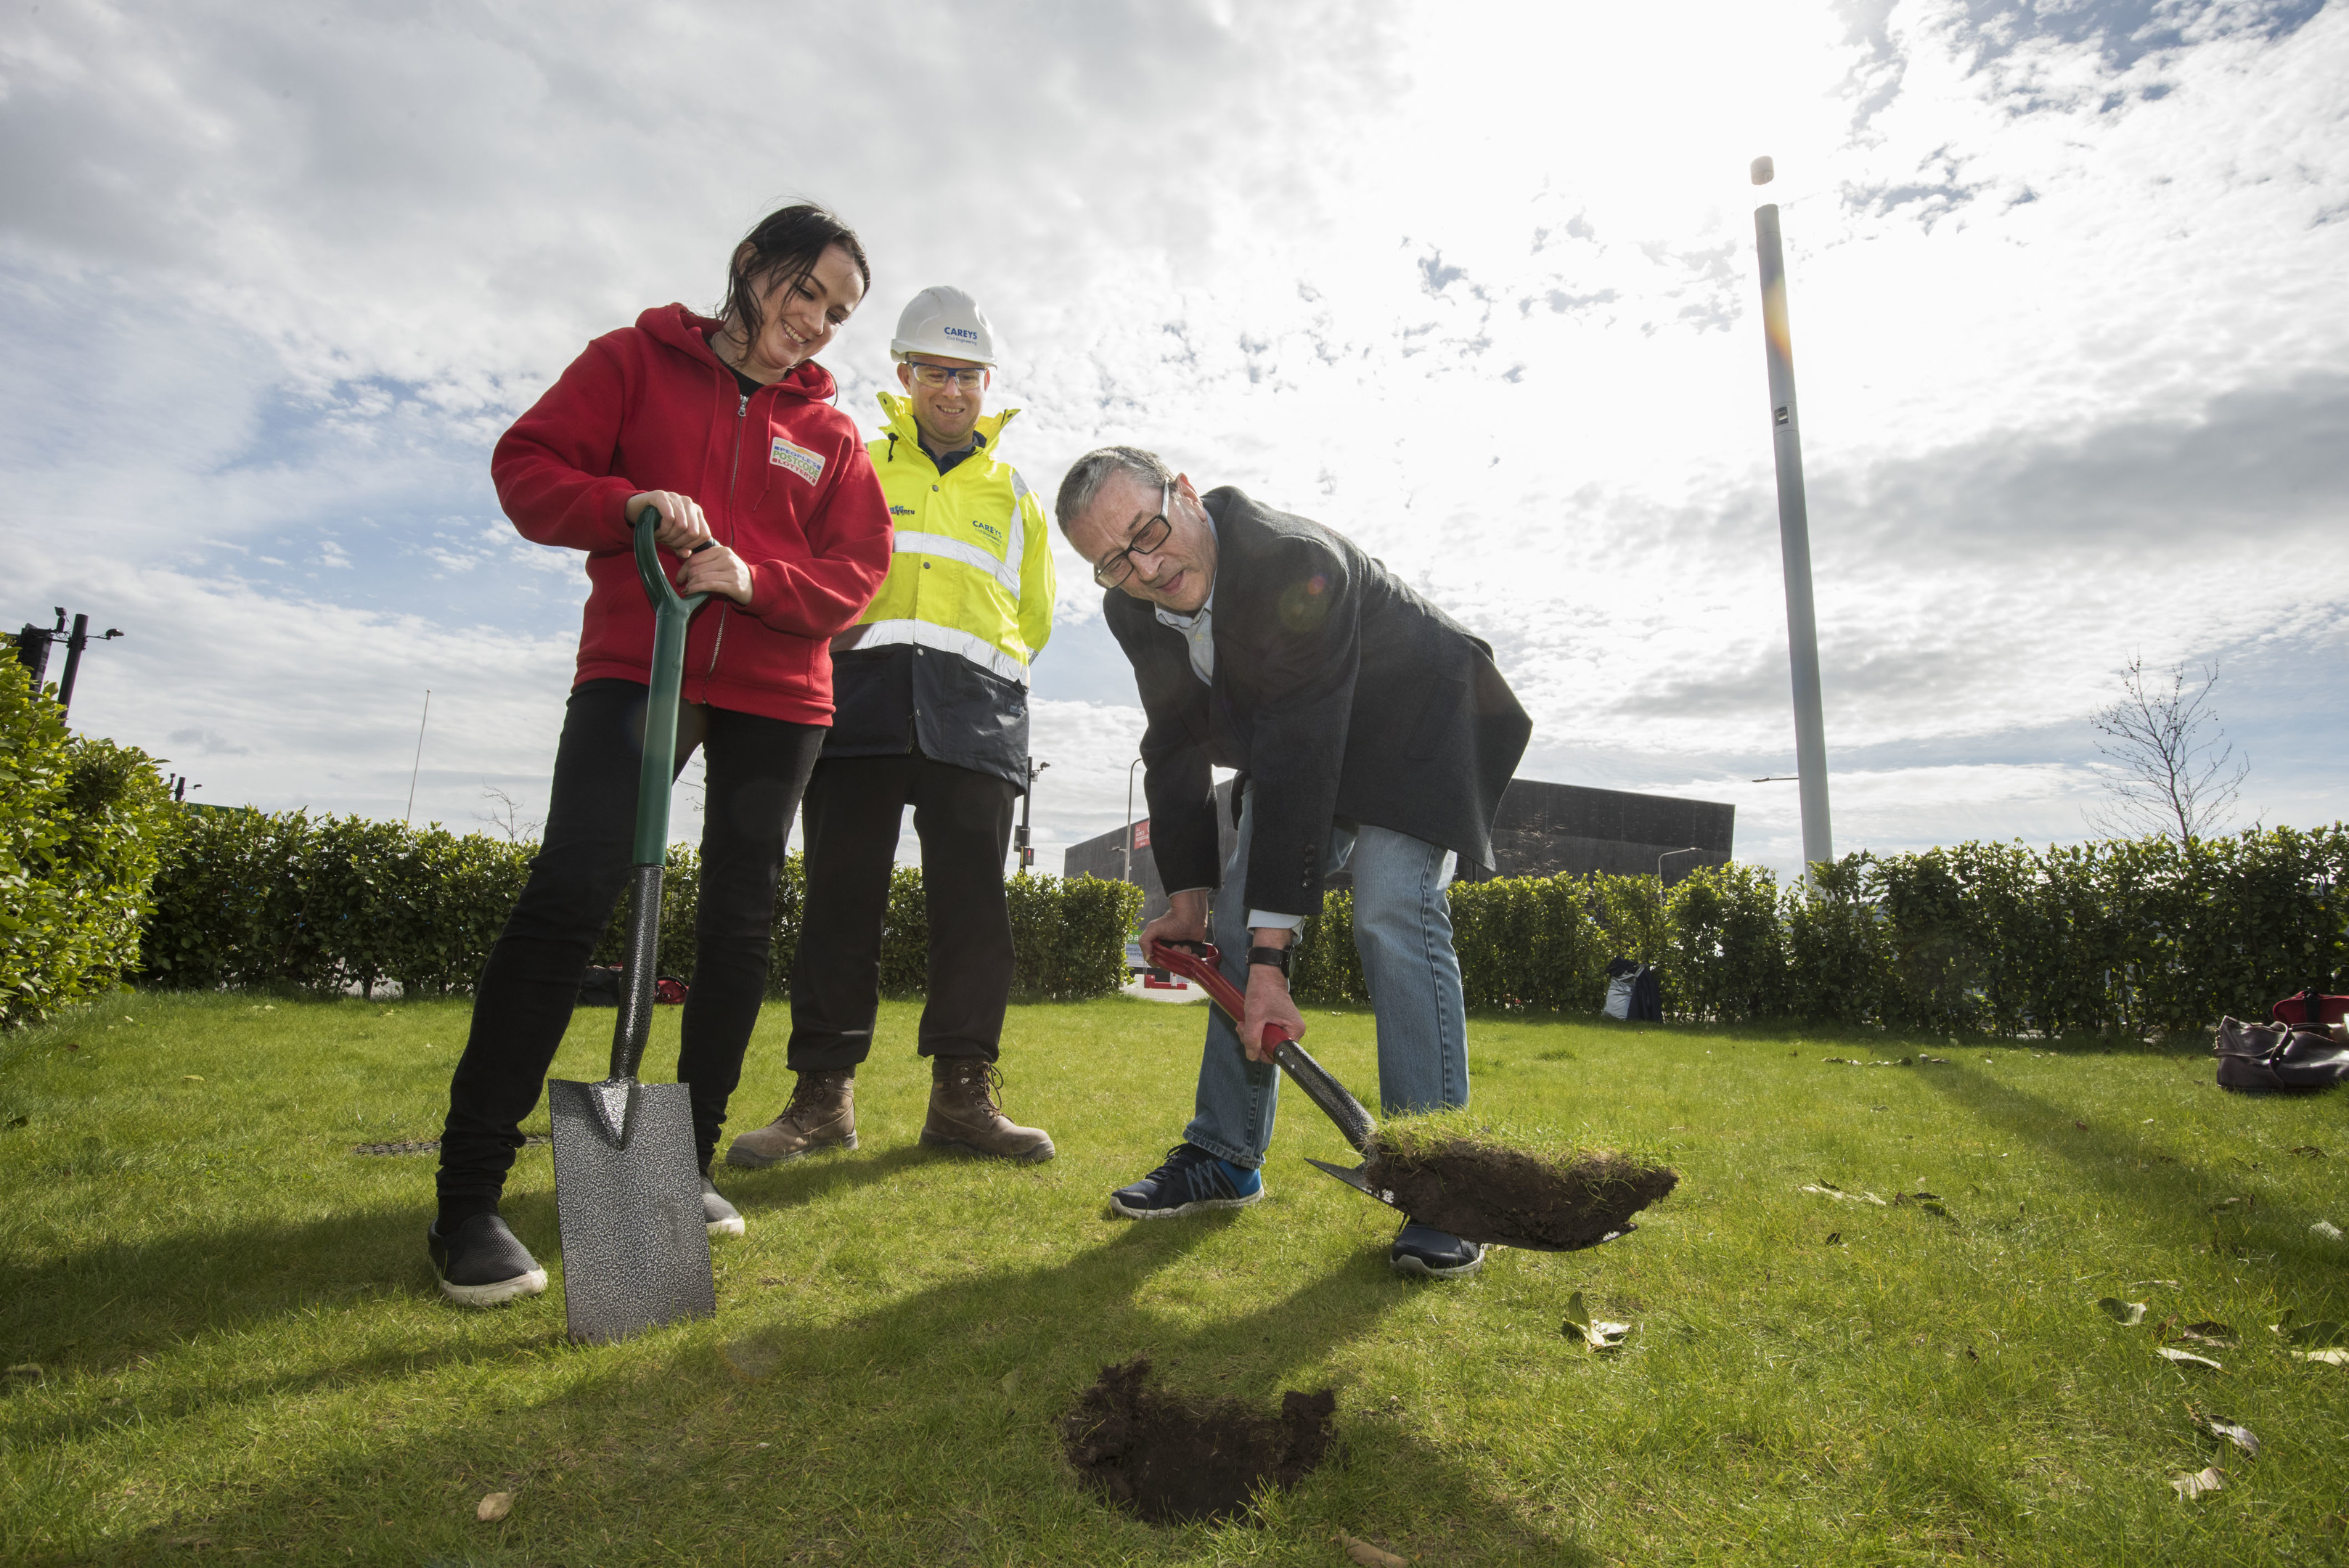 V&A Dundee Community garden on Slessor Gardens Starting work are  Stephanie Kerr frp, the People Postcode Lottery, Paddy Duffy Project Manager for the V&;A Dundee and Derek Cassie from the V&A Community Garden